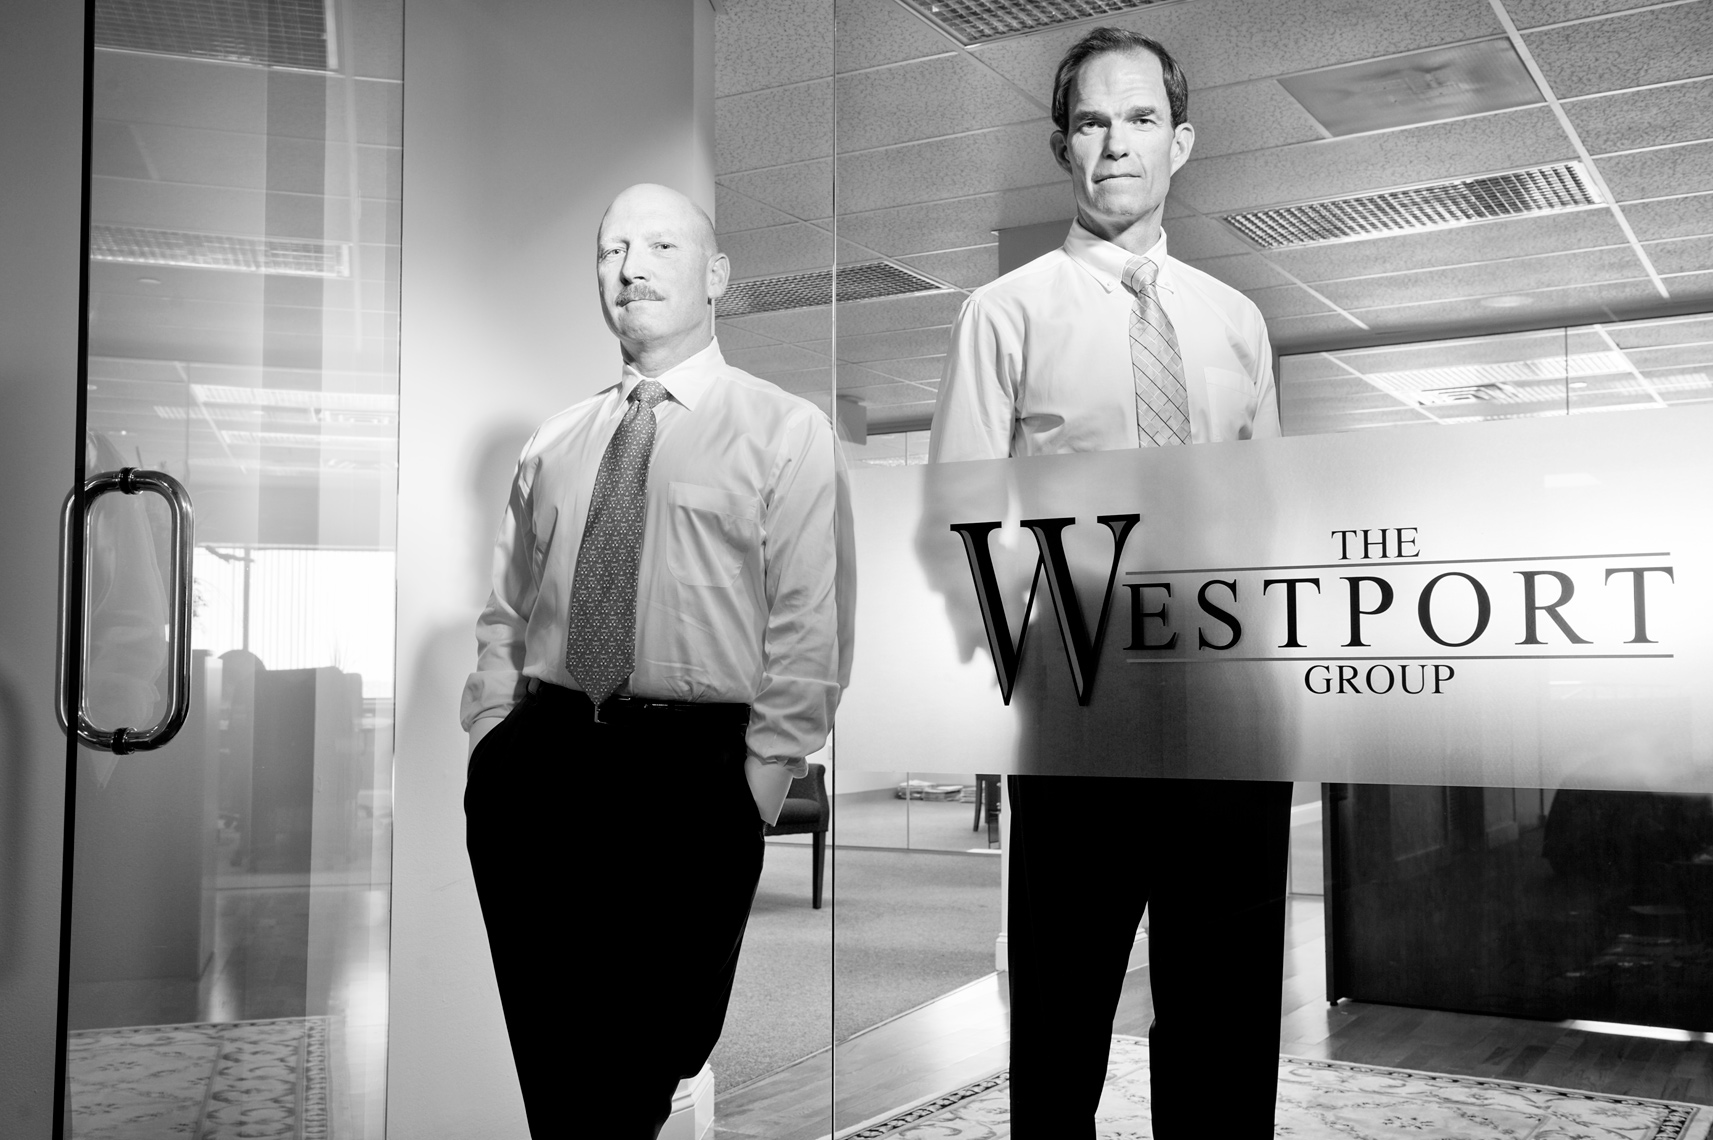 portrait of the Westport Group for Summit Business Media by Webb Chappell